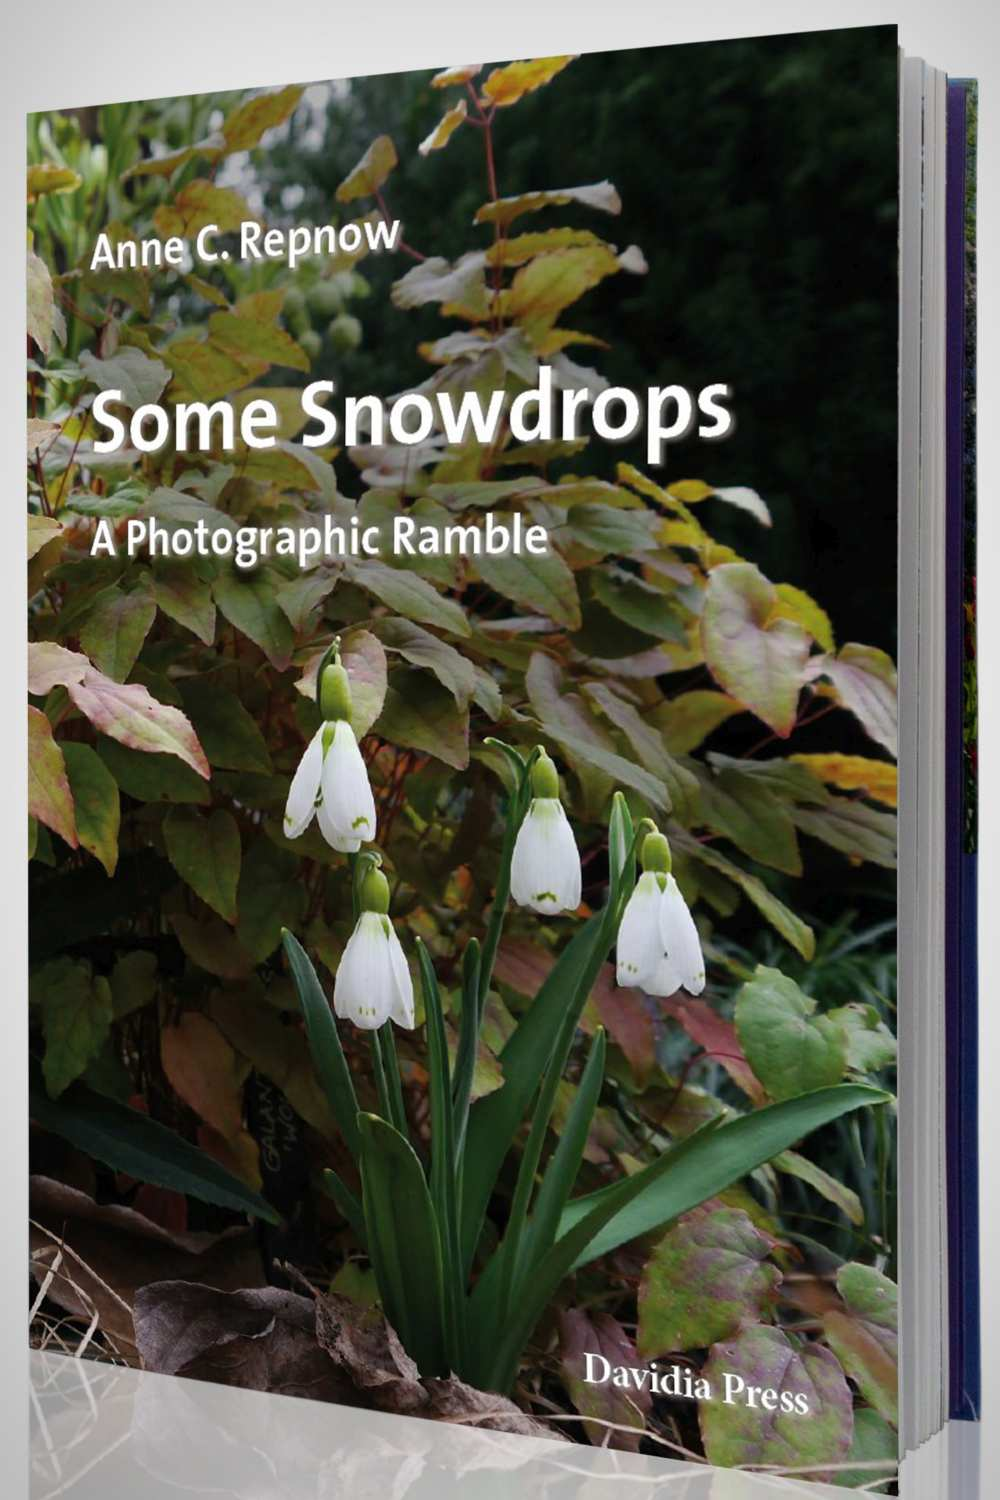 Some Snowdrops A Photographic Ramble